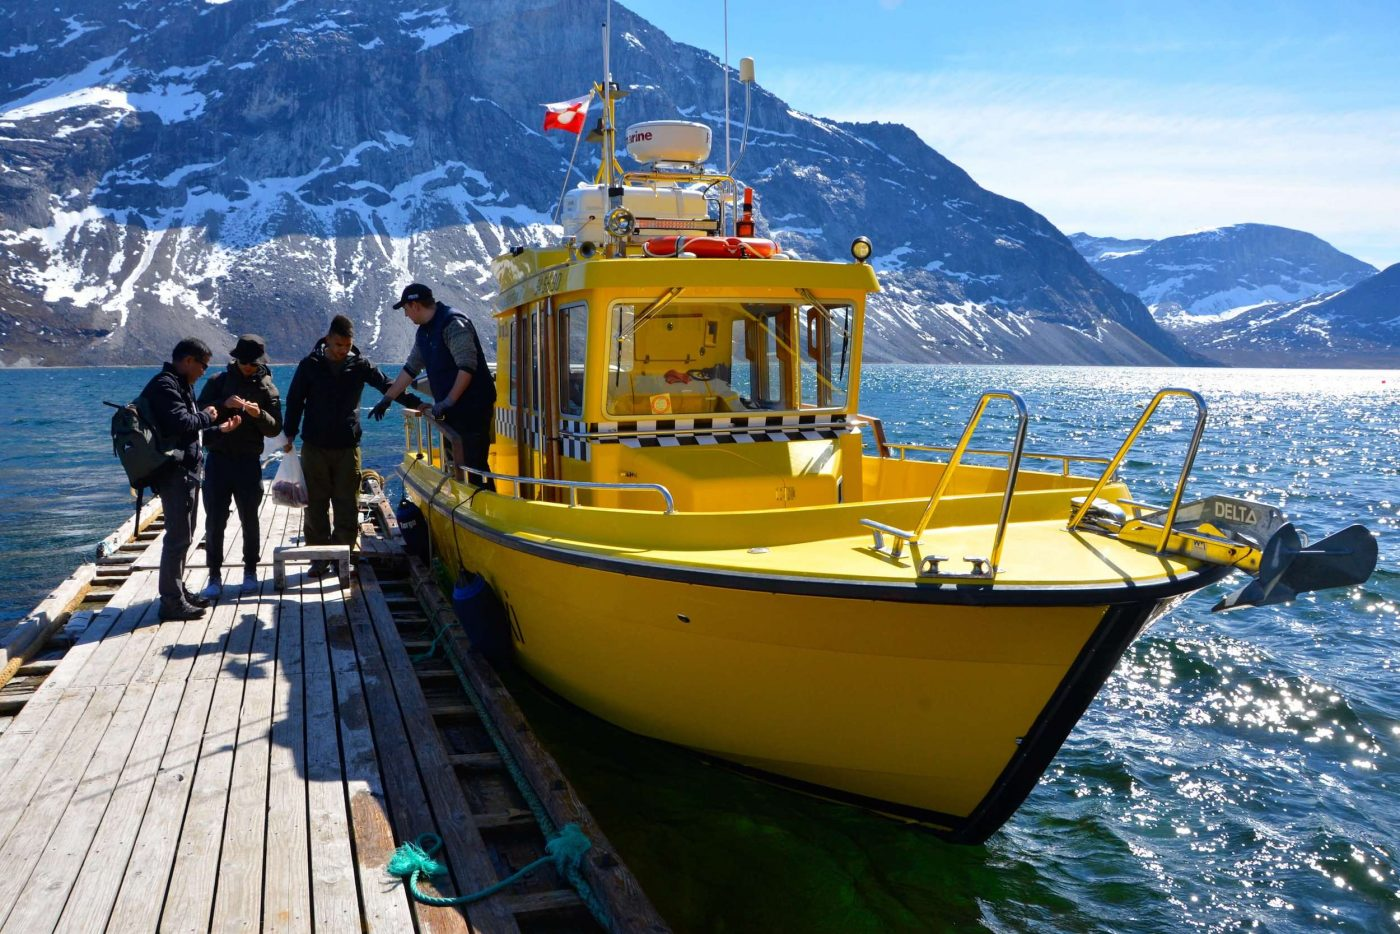 Catch of the day at the dock. Photo by Nuuk Water Taxi